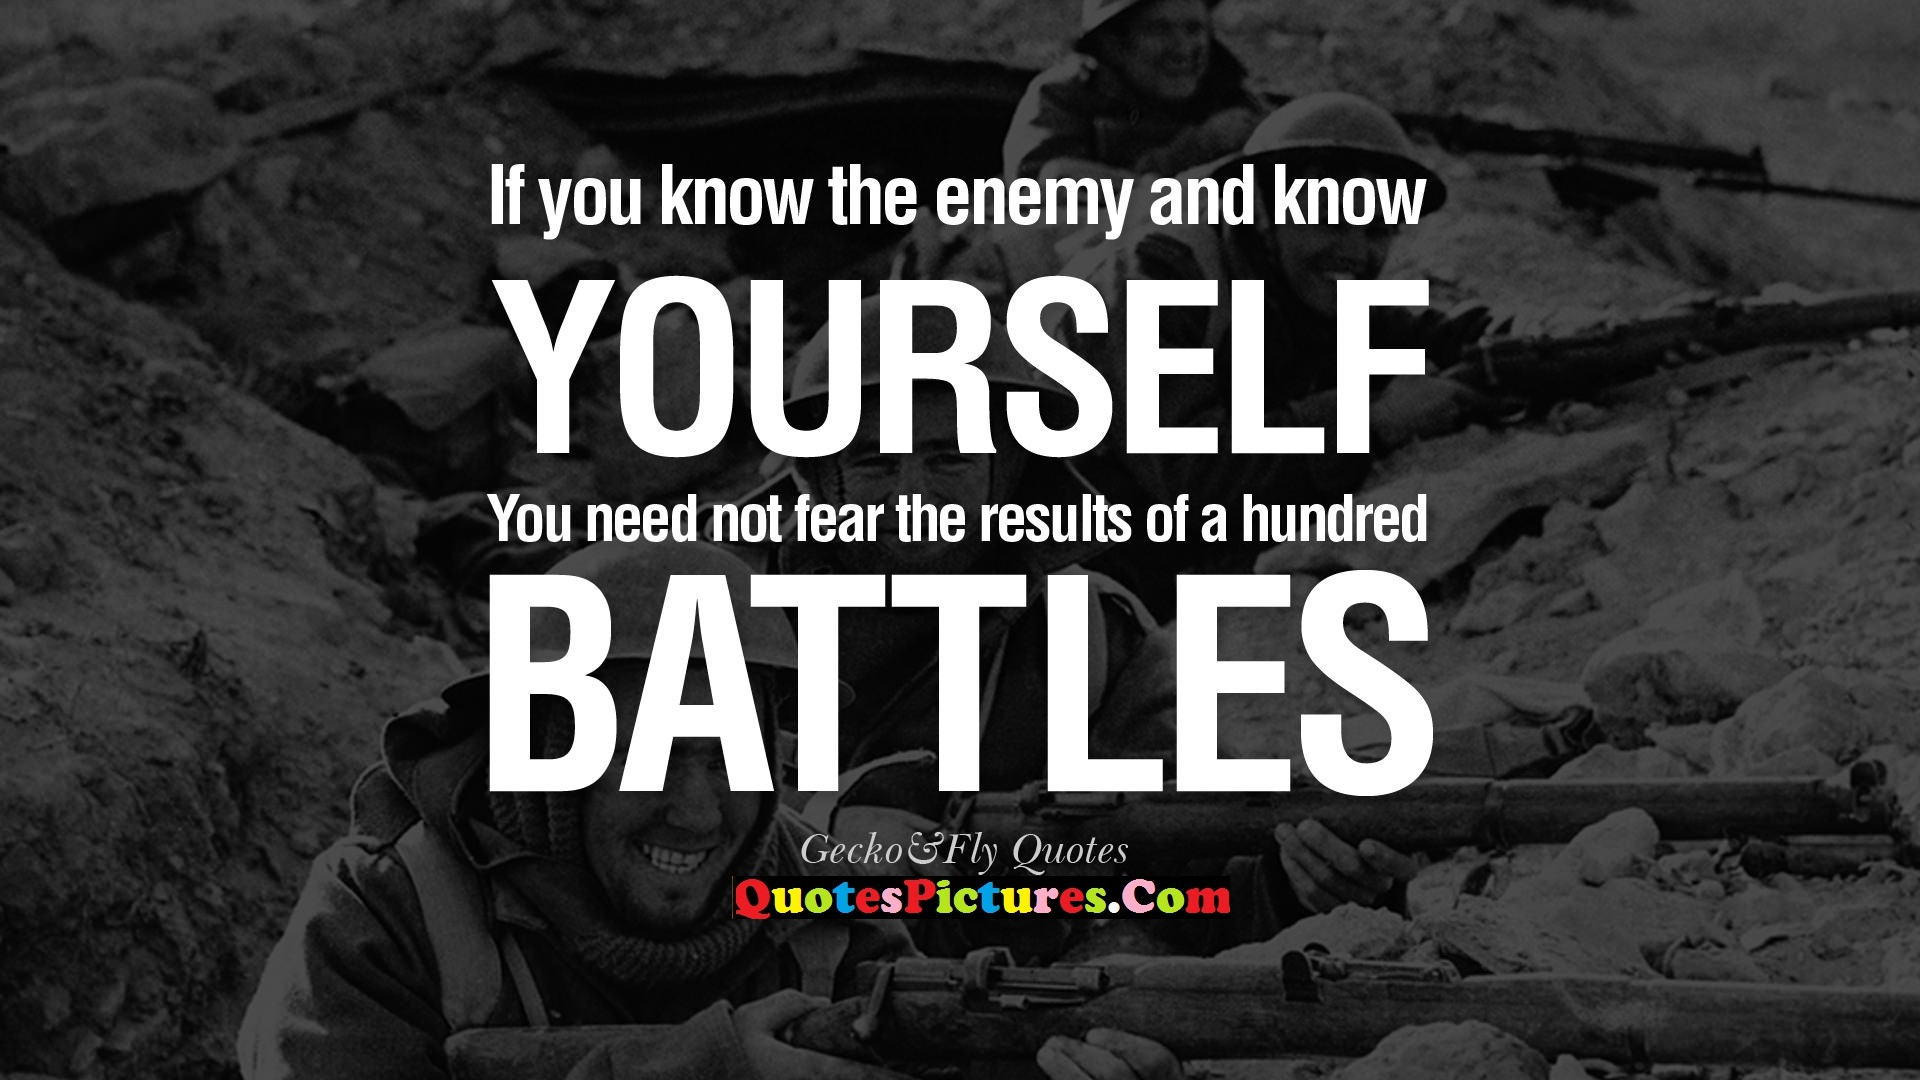 Motivational Enemy Quote - If You Know The Enemy And Know Yourself You Need Not Fear The Results Of A Hundred Battles.